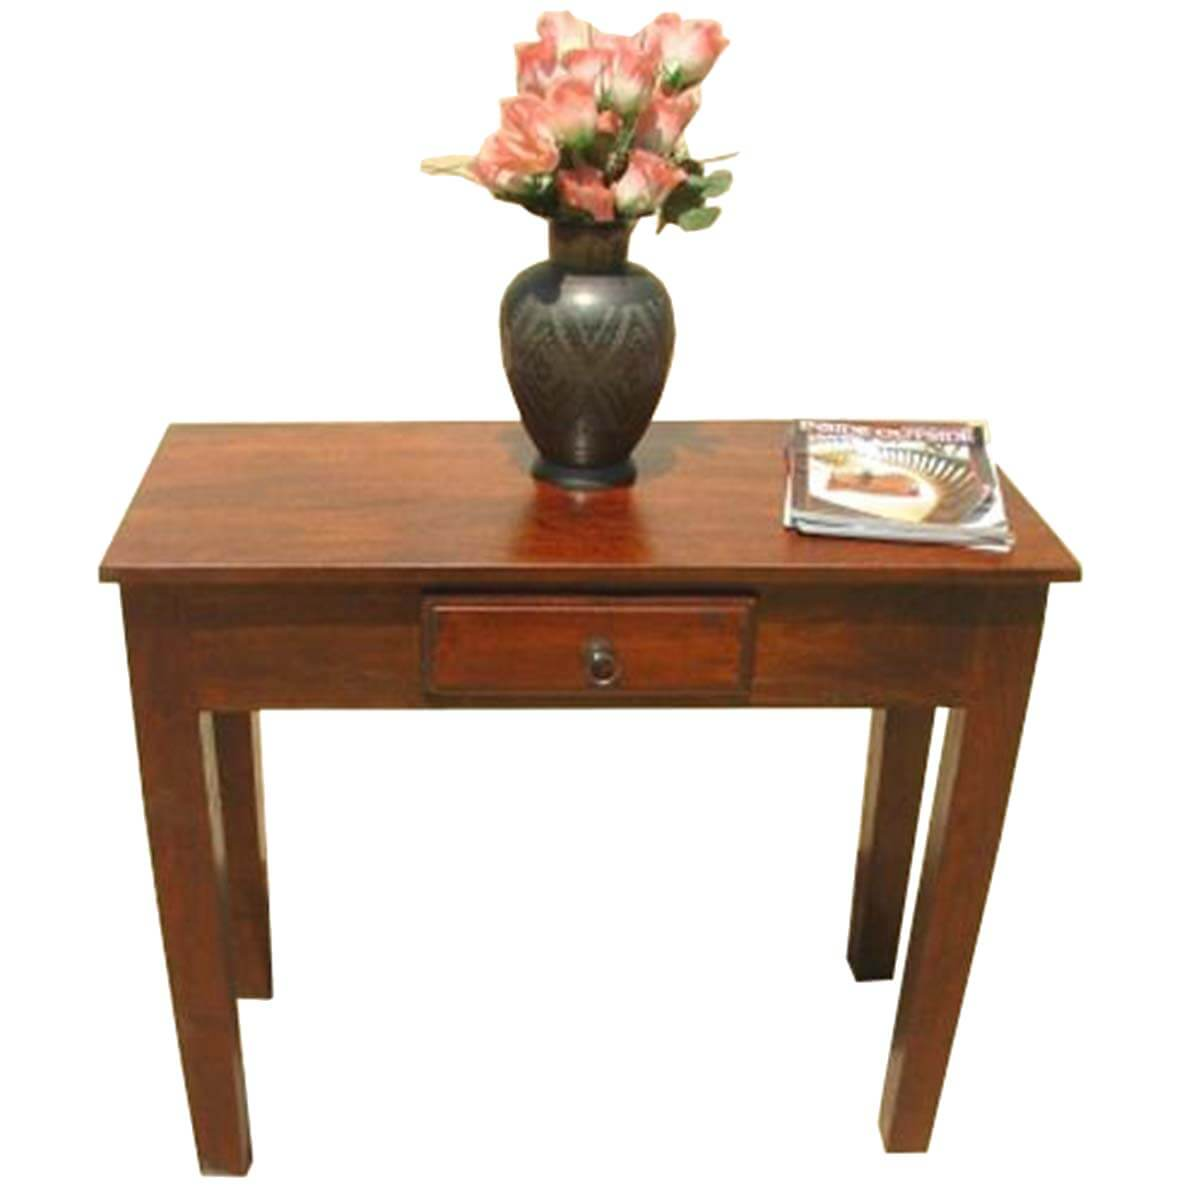 title | Foyer Tables For Sale